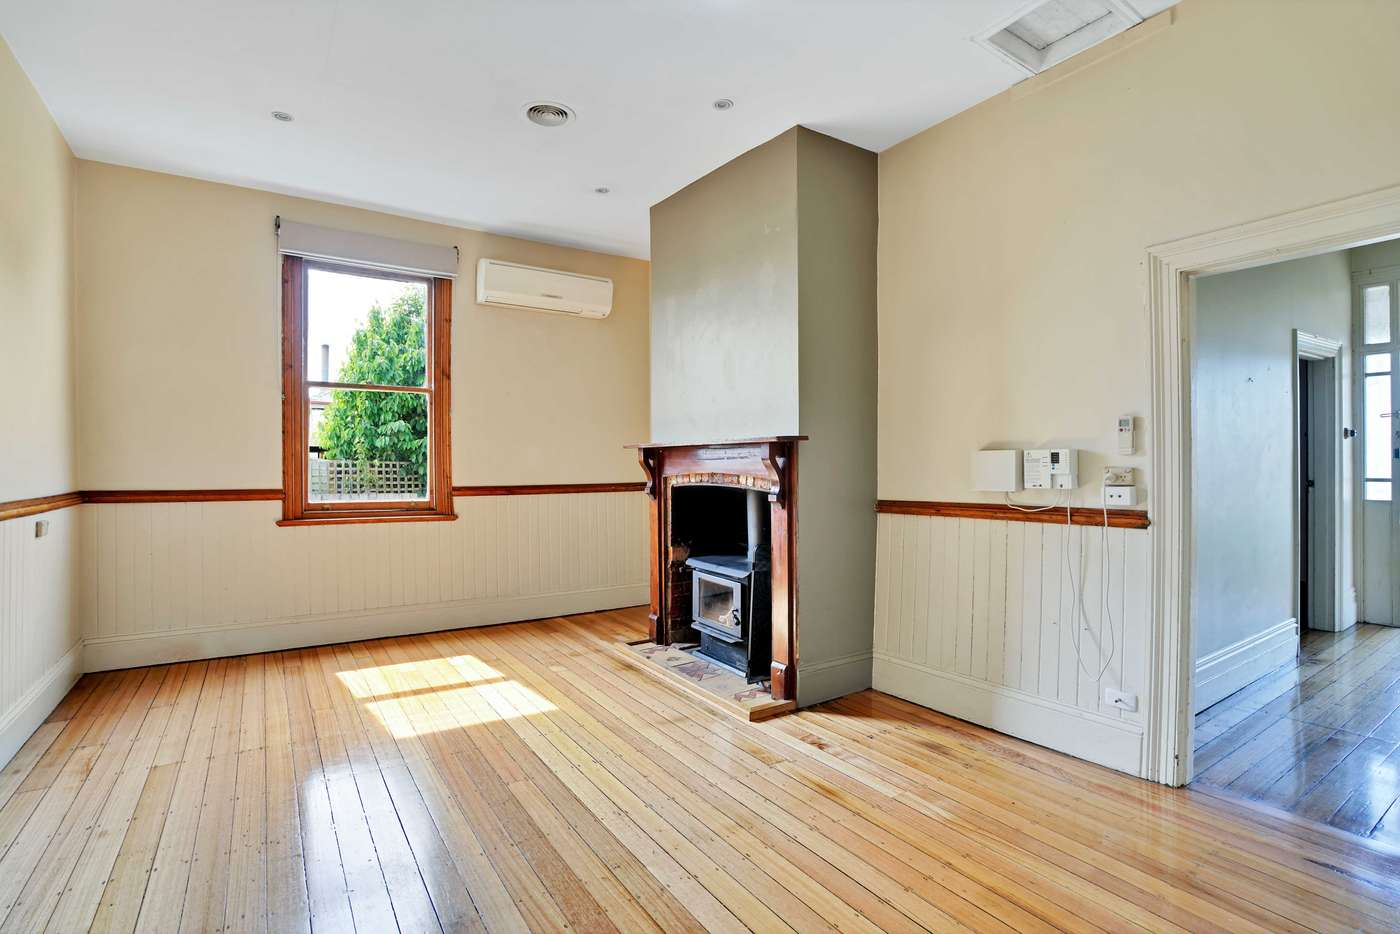 Fifth view of Homely house listing, 40 Gleadow Street, Invermay TAS 7248